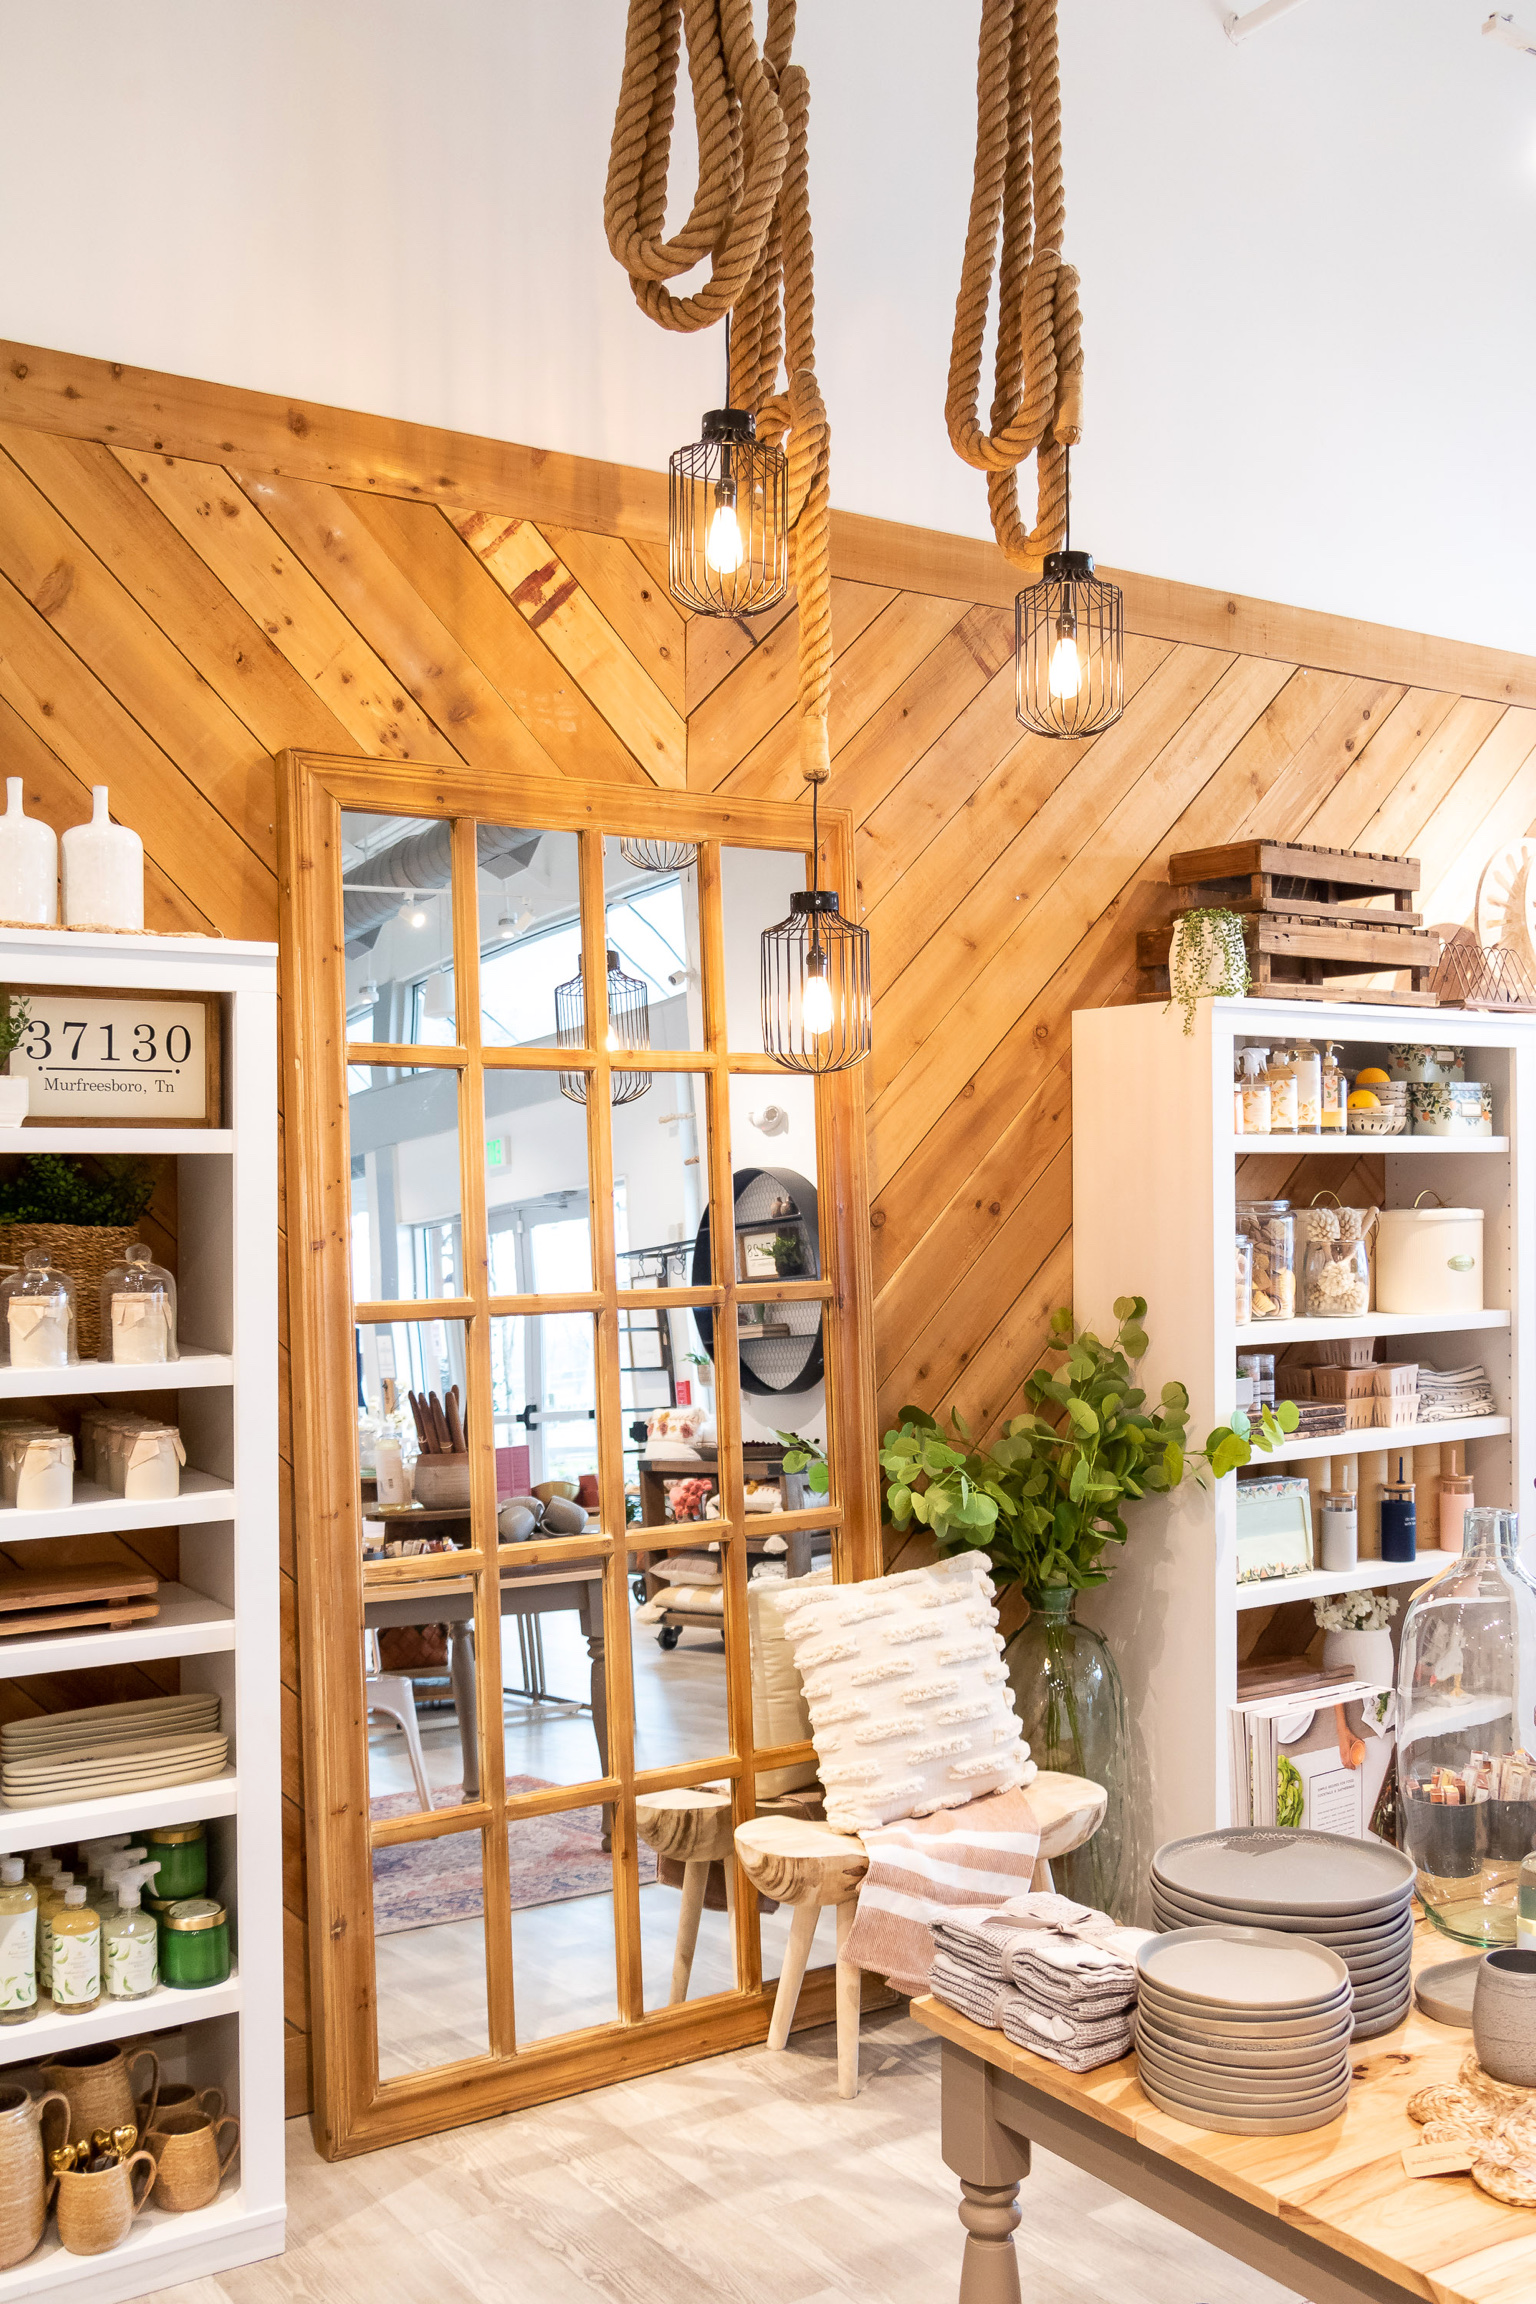 Home decor and gifts at Homegrown Marketplace